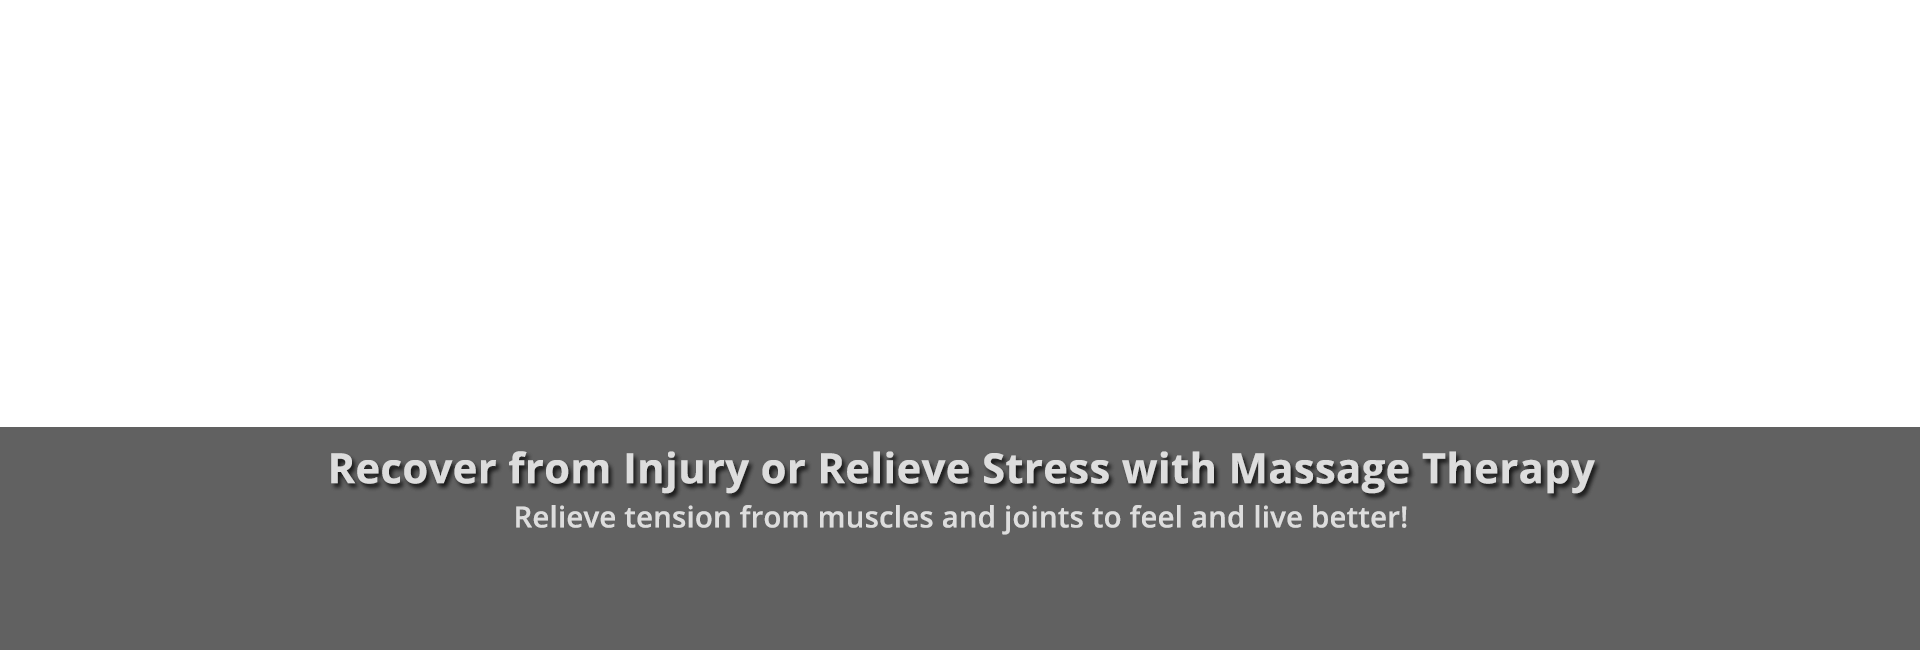 Elevation Physiotherapy & Wellness :: Relieve Tension from Muscles and Joints to Feel and Live Better!